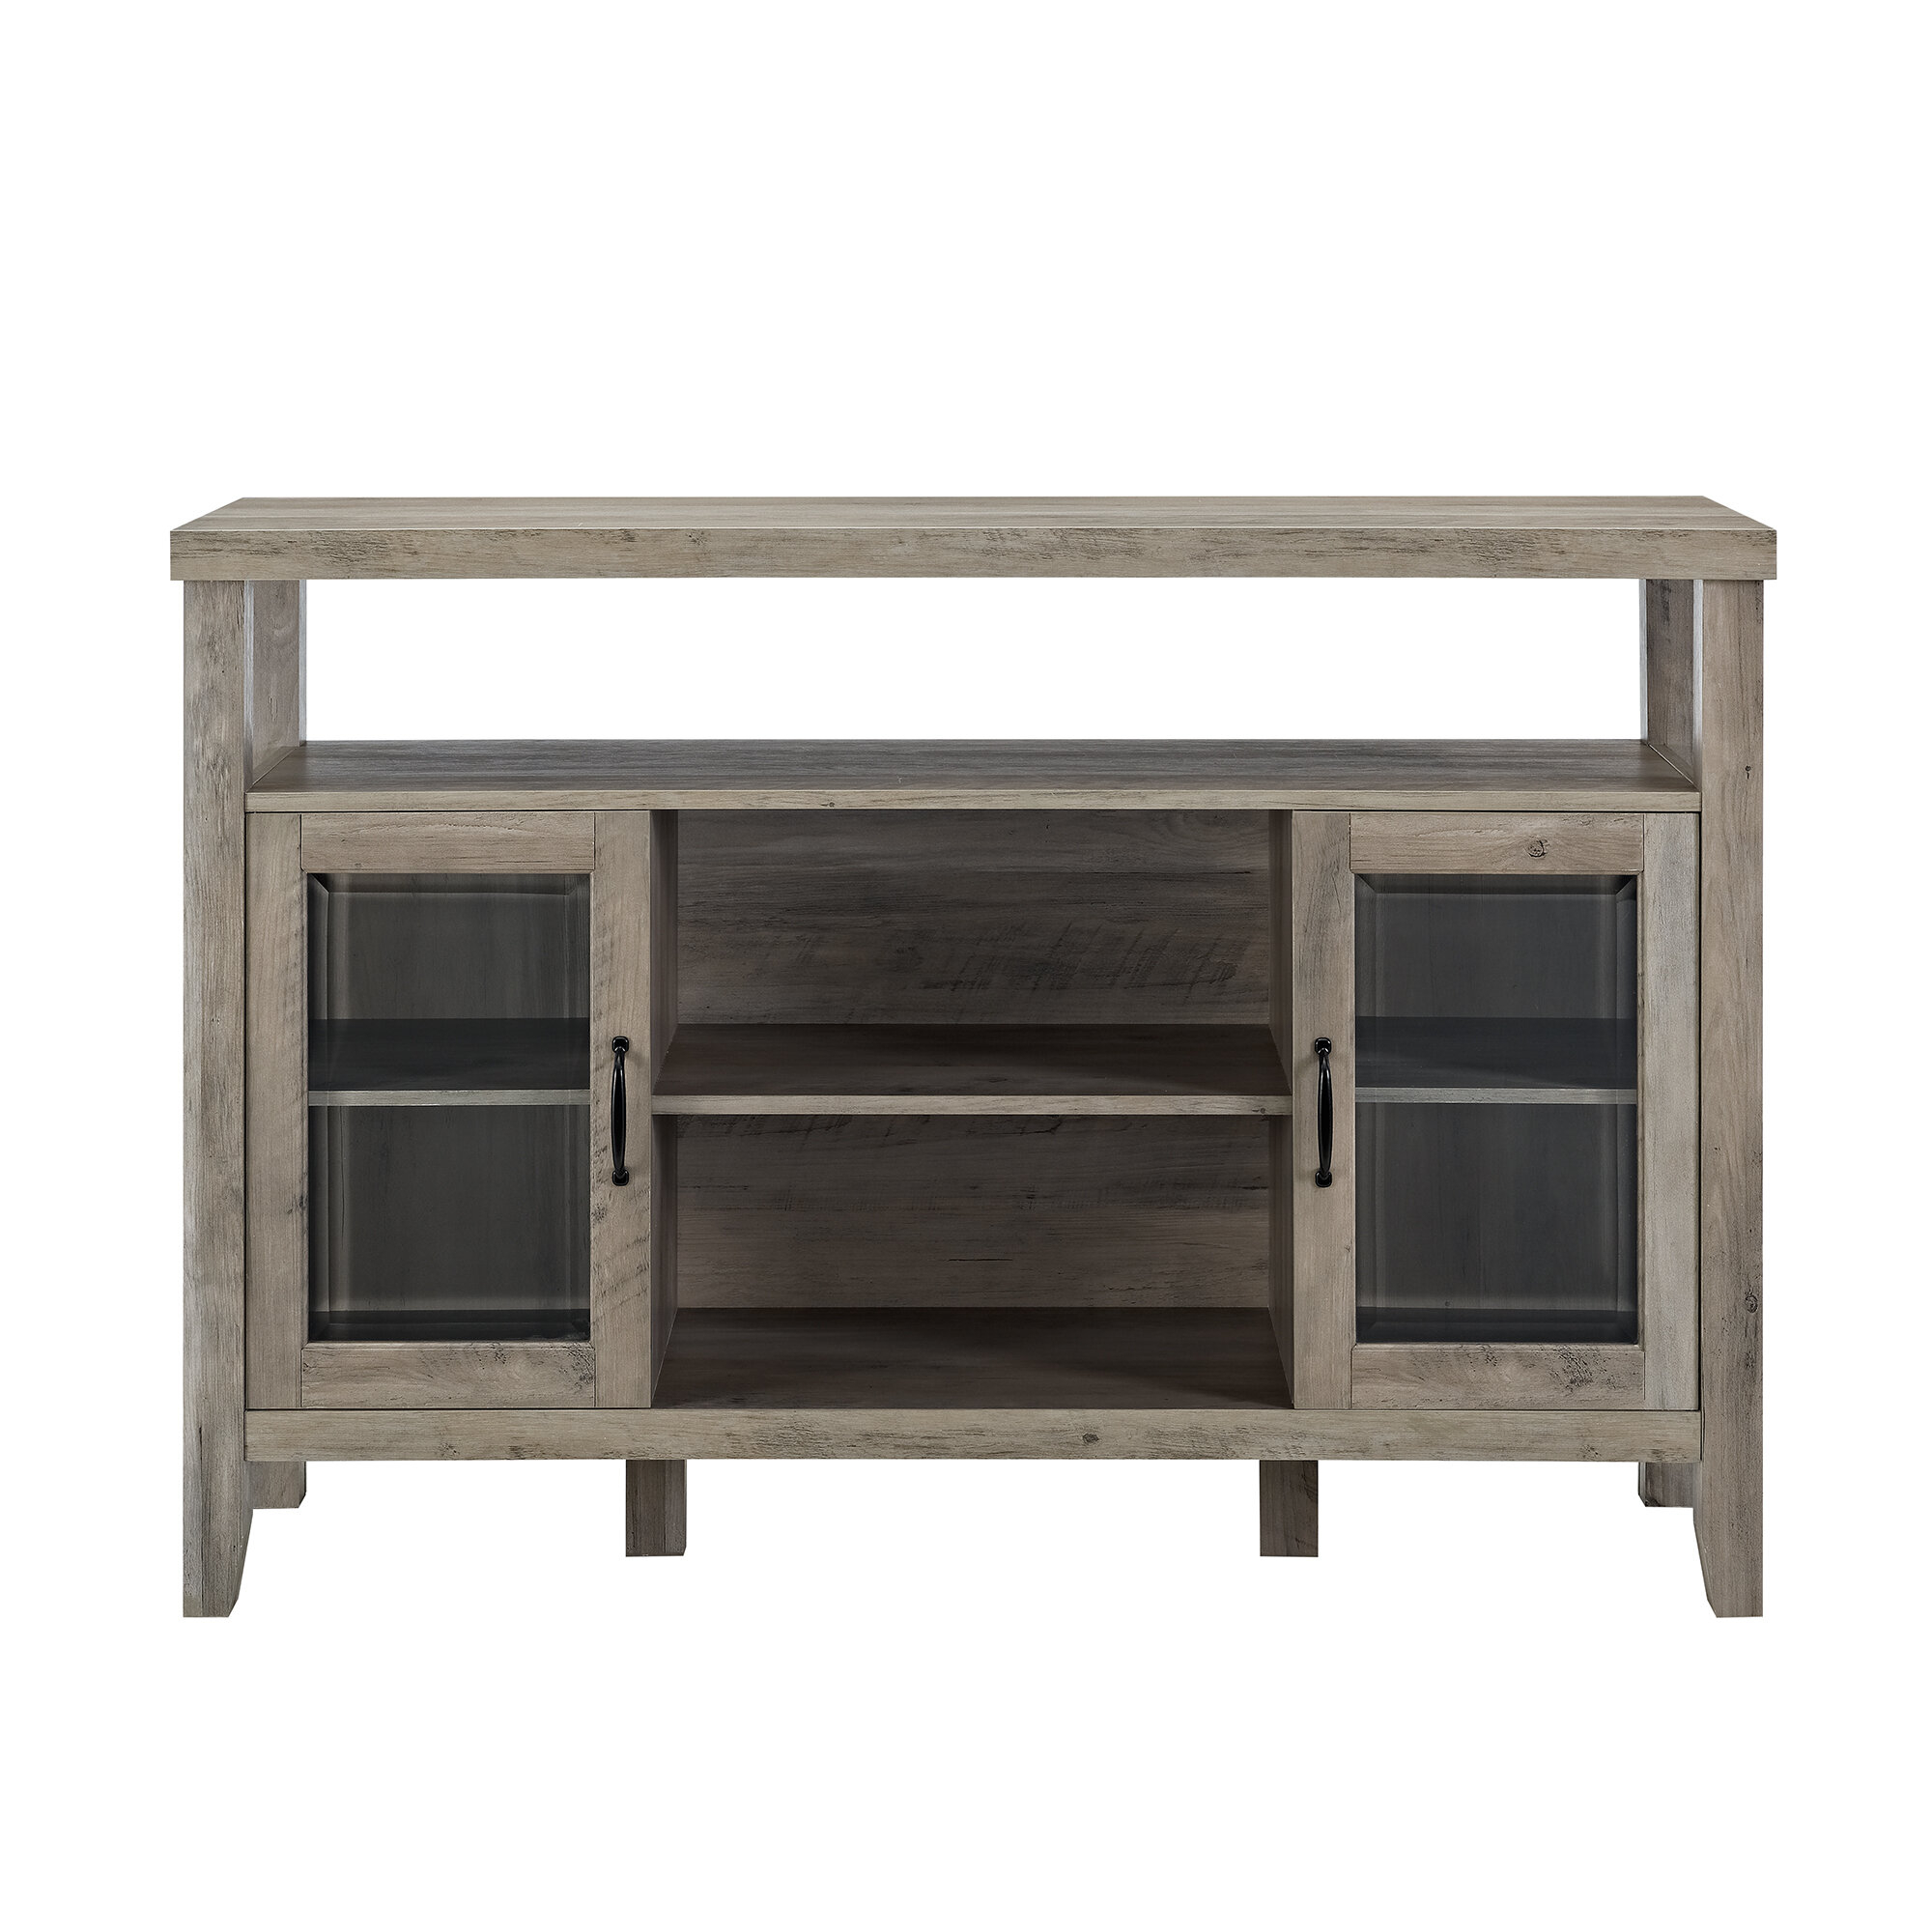 Modern & Contemporary Juniper 3 Door Sideboard | Allmodern inside Jacklyn 3 Door Sideboards (Image 19 of 30)